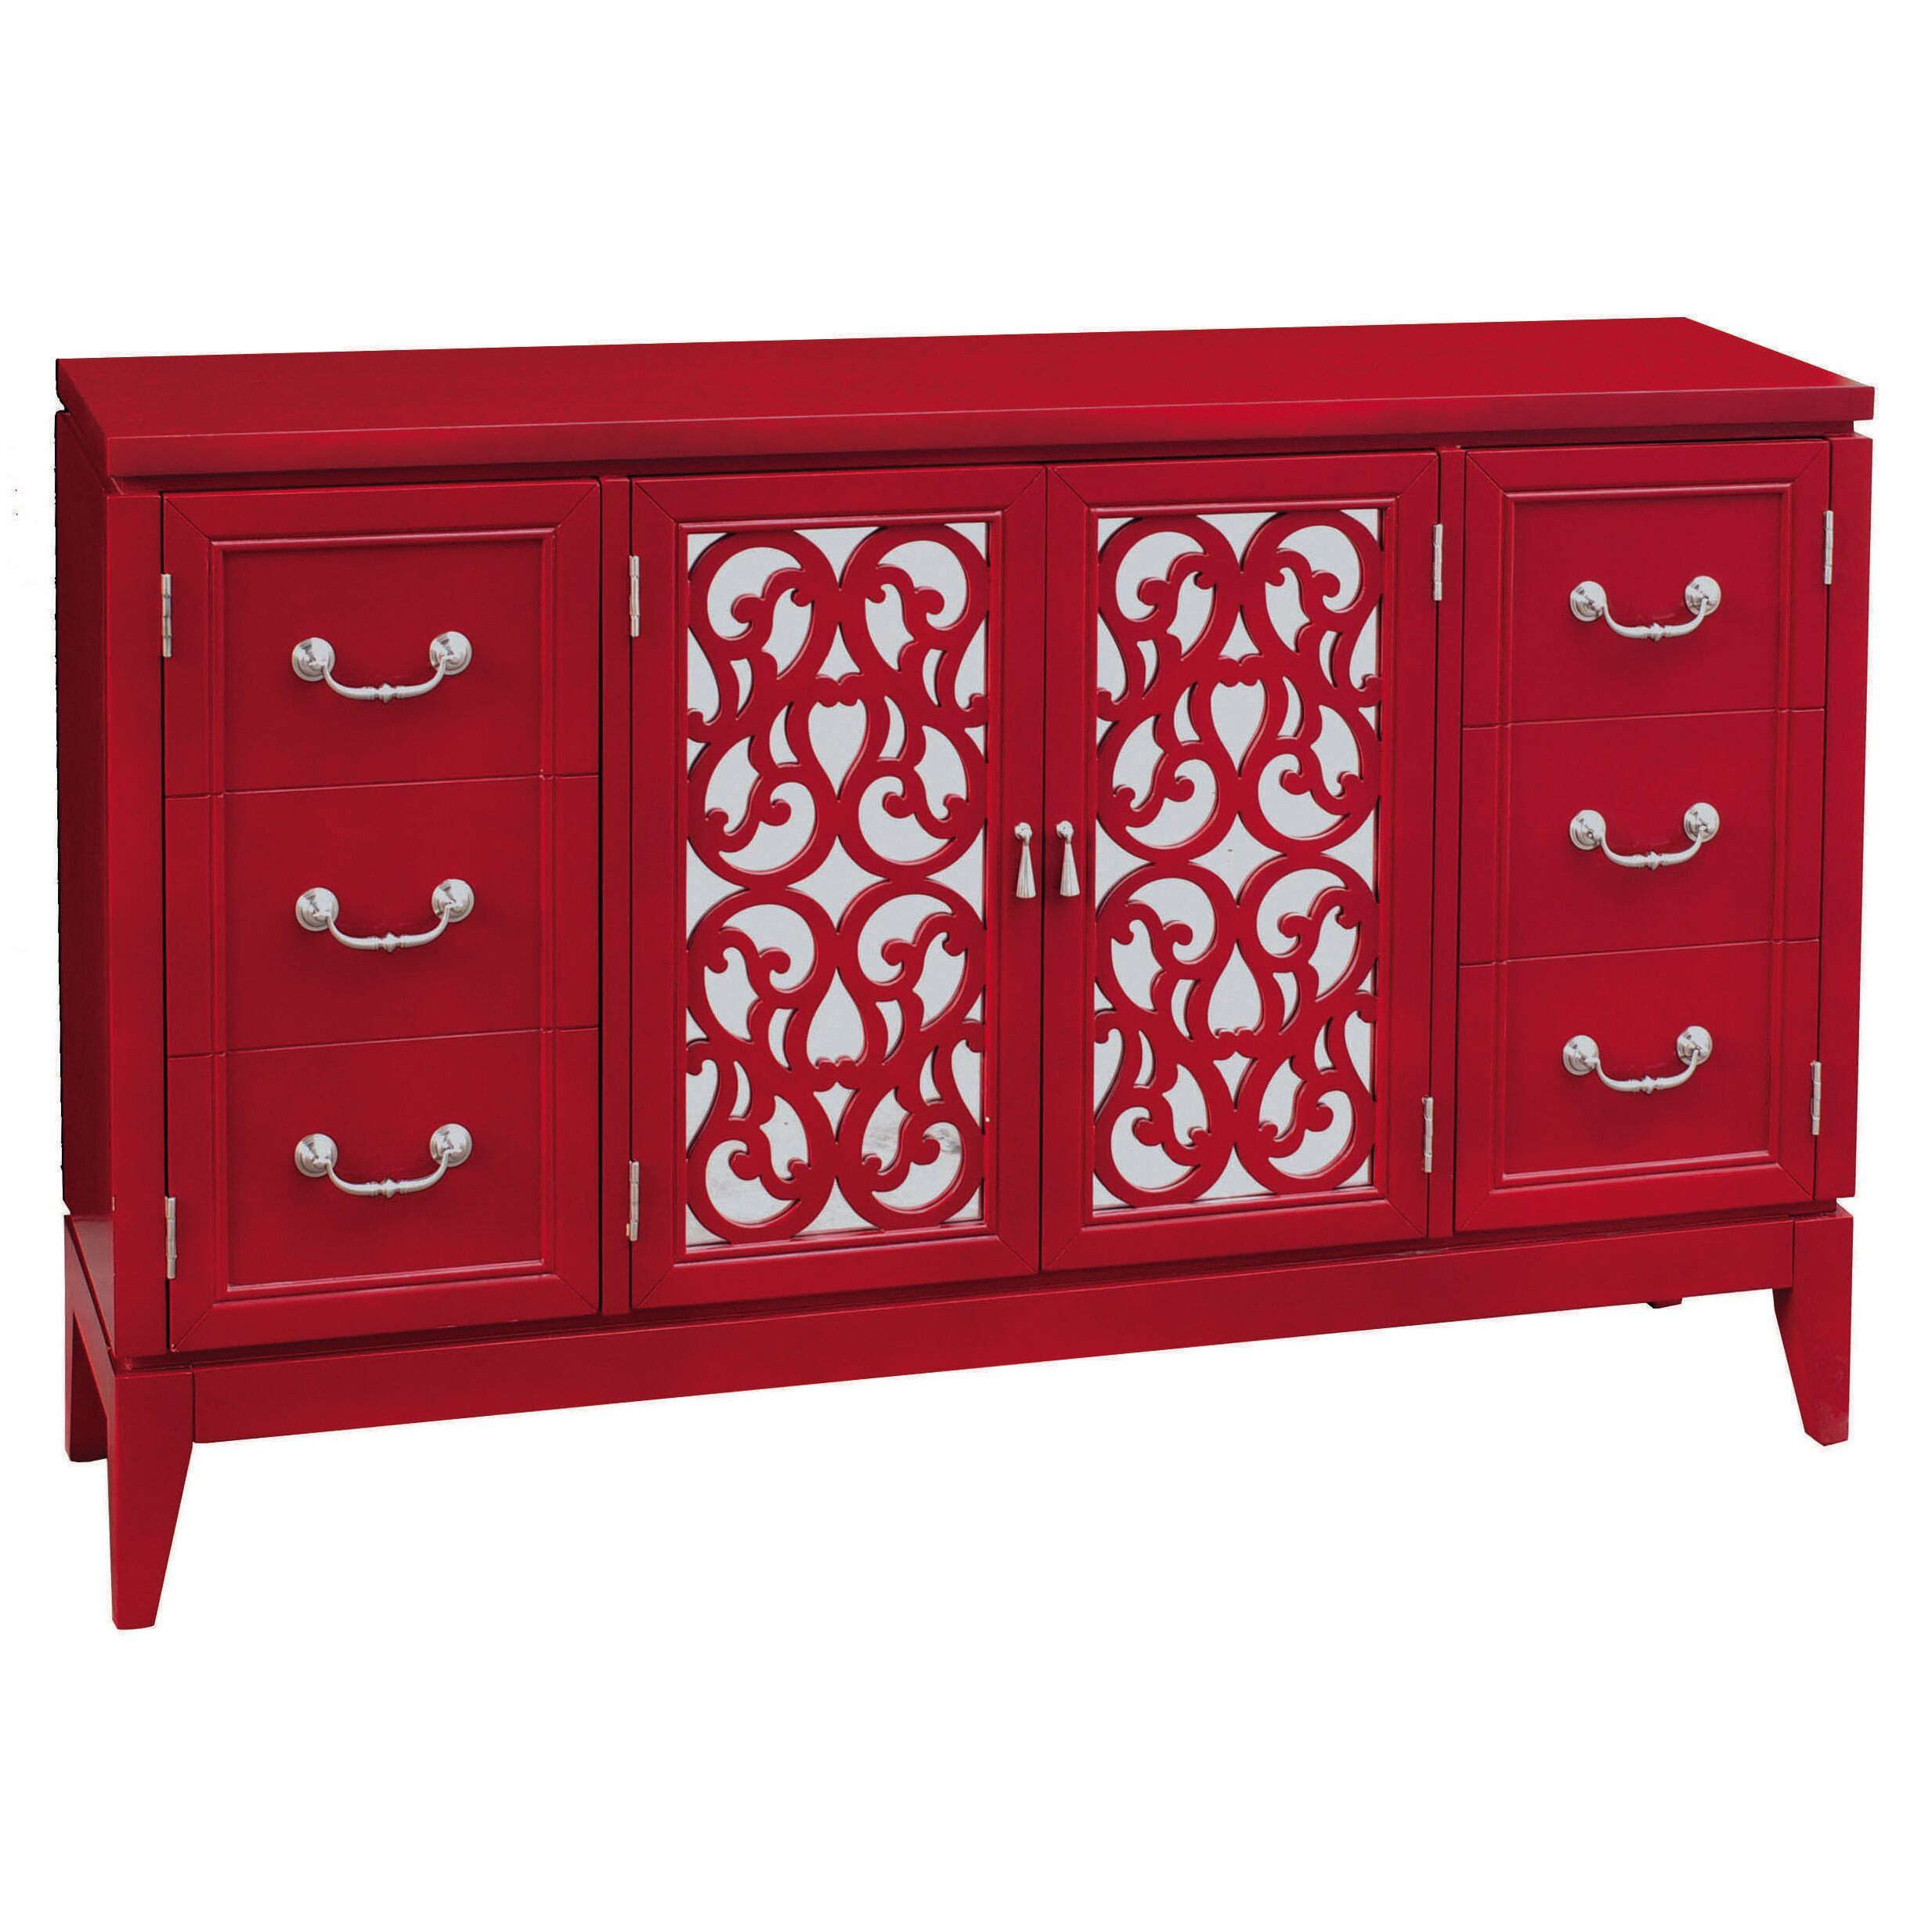 Red Futon Mattress Pulaski Console 4 Door Cabinet & Reviews | Wayfair